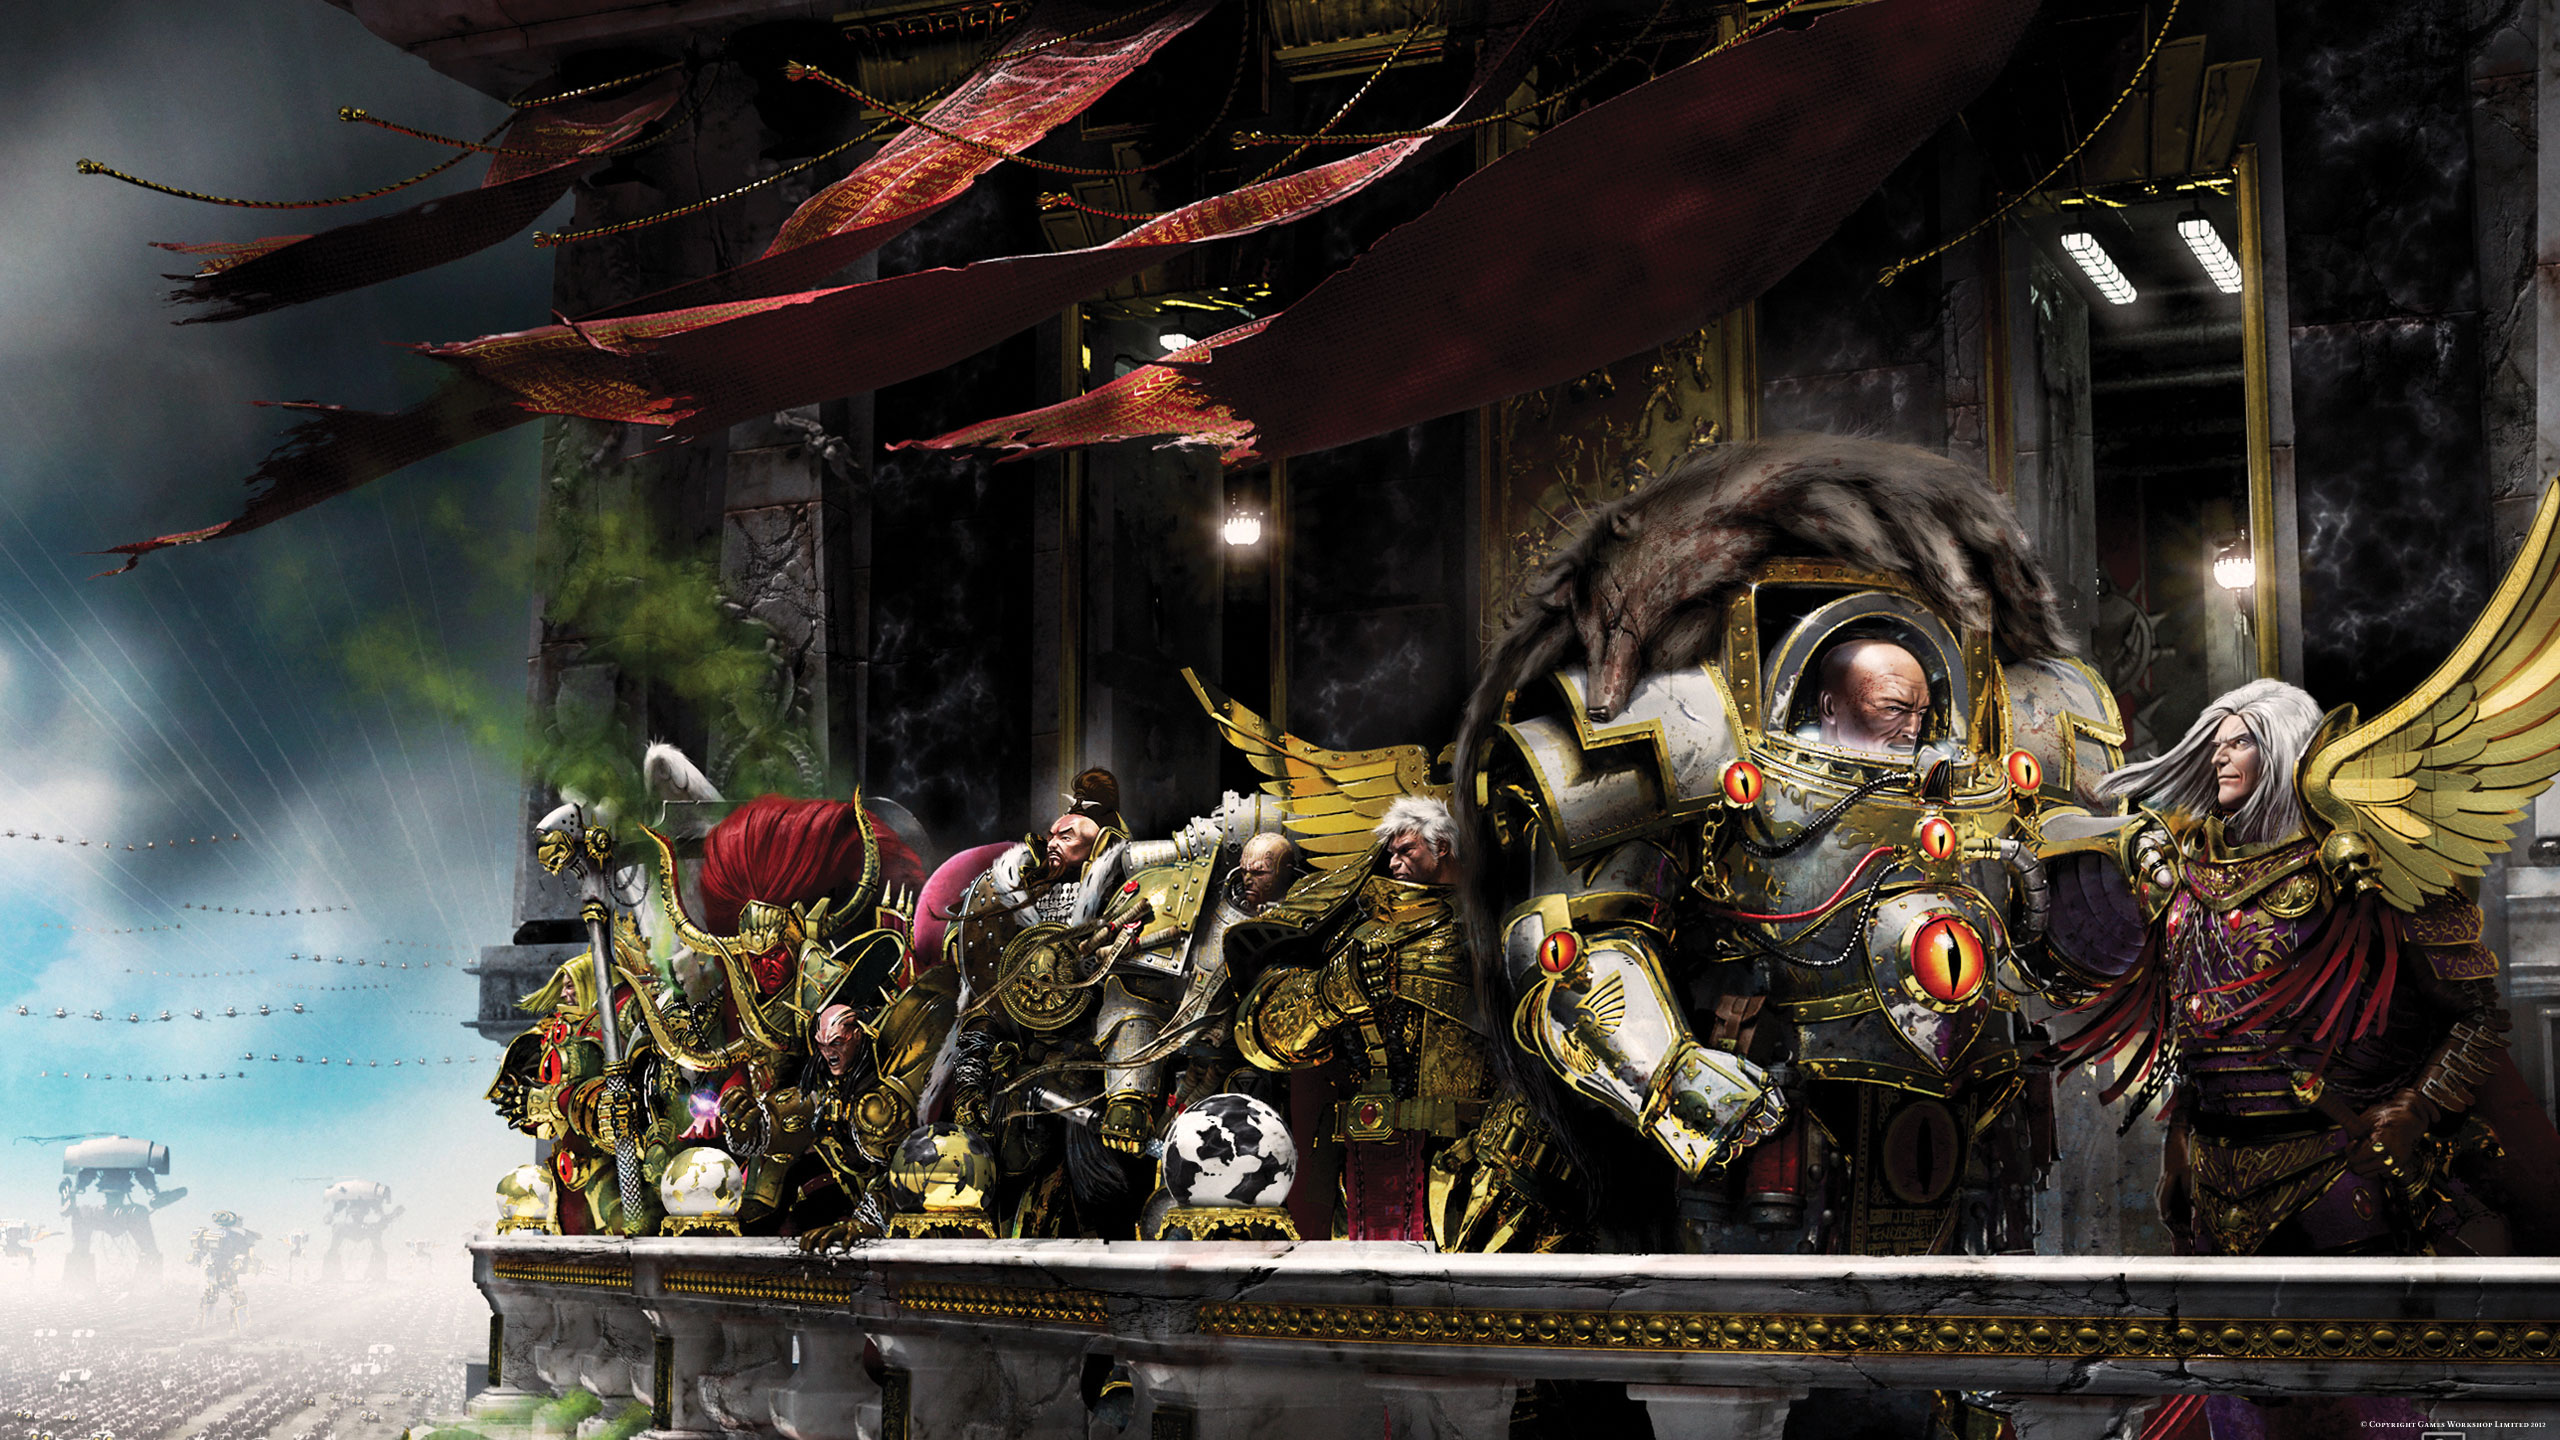 Wallpapers Hérésie d'Horus/Horus Heresy (mise en page/plus complet) 1708281358344774291